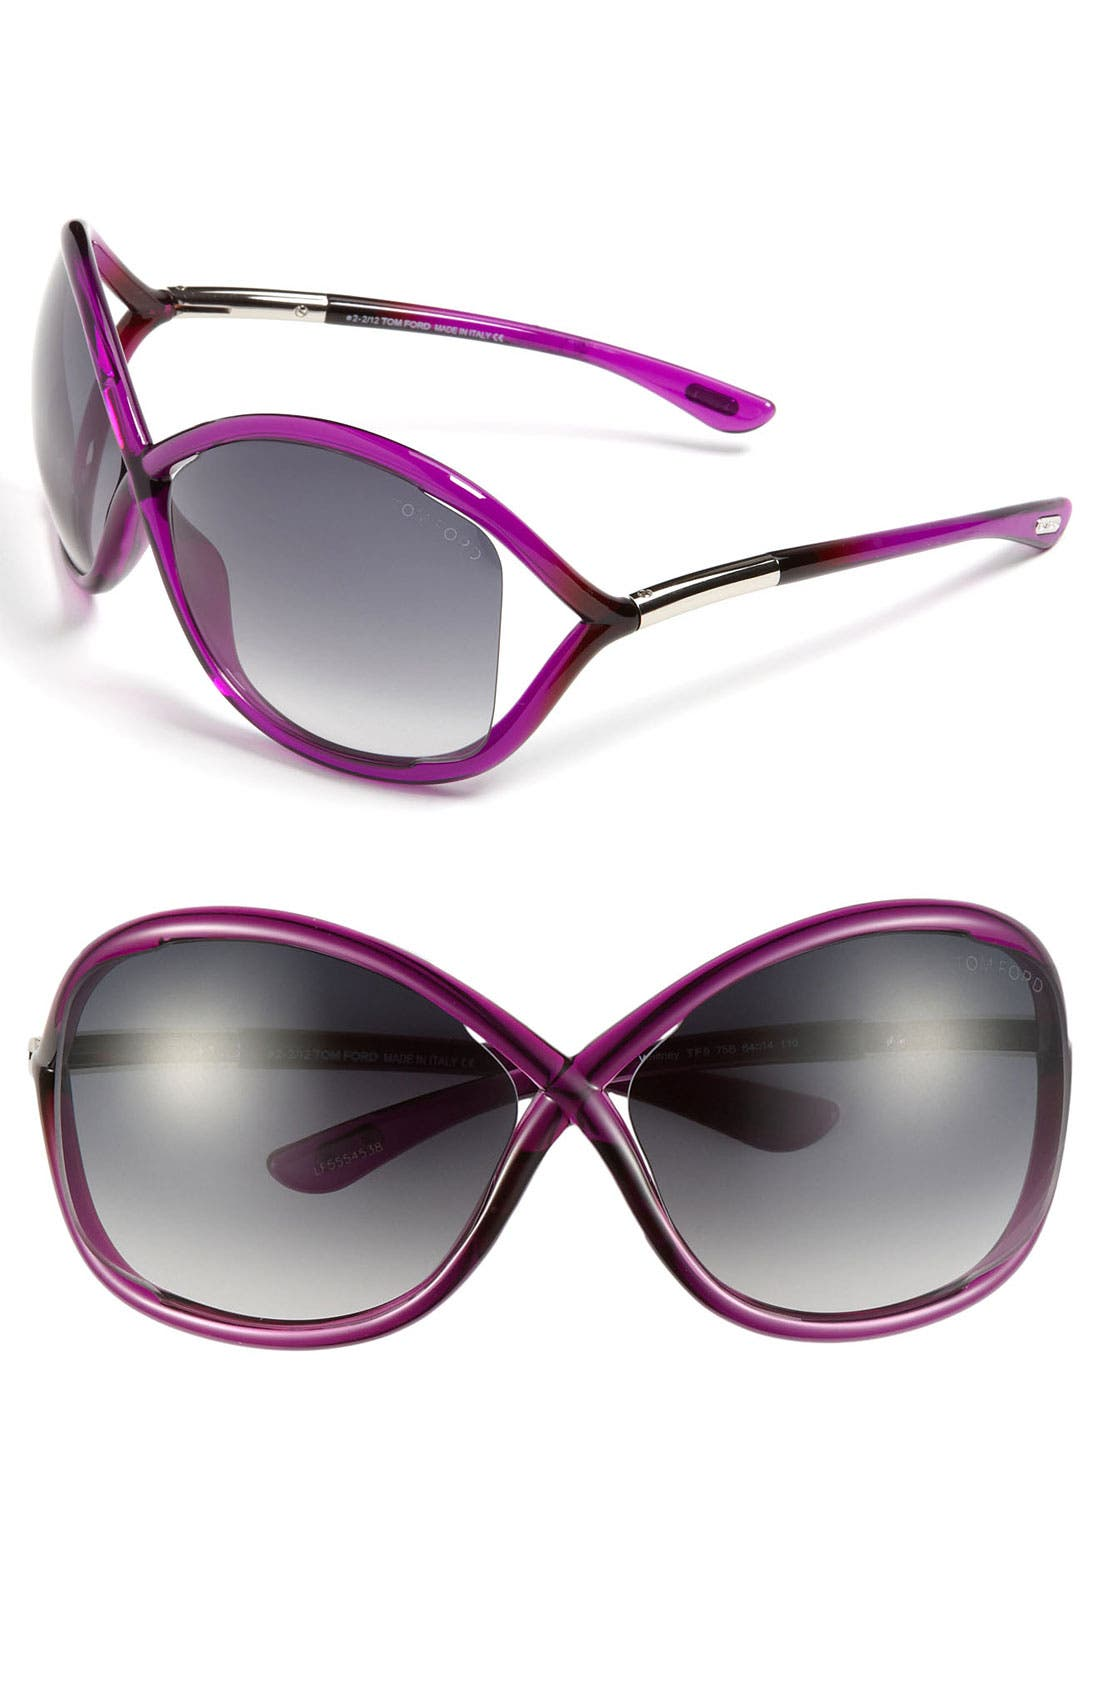 Main Image - Tom Ford 'Whitney' 64mm Sunglasses